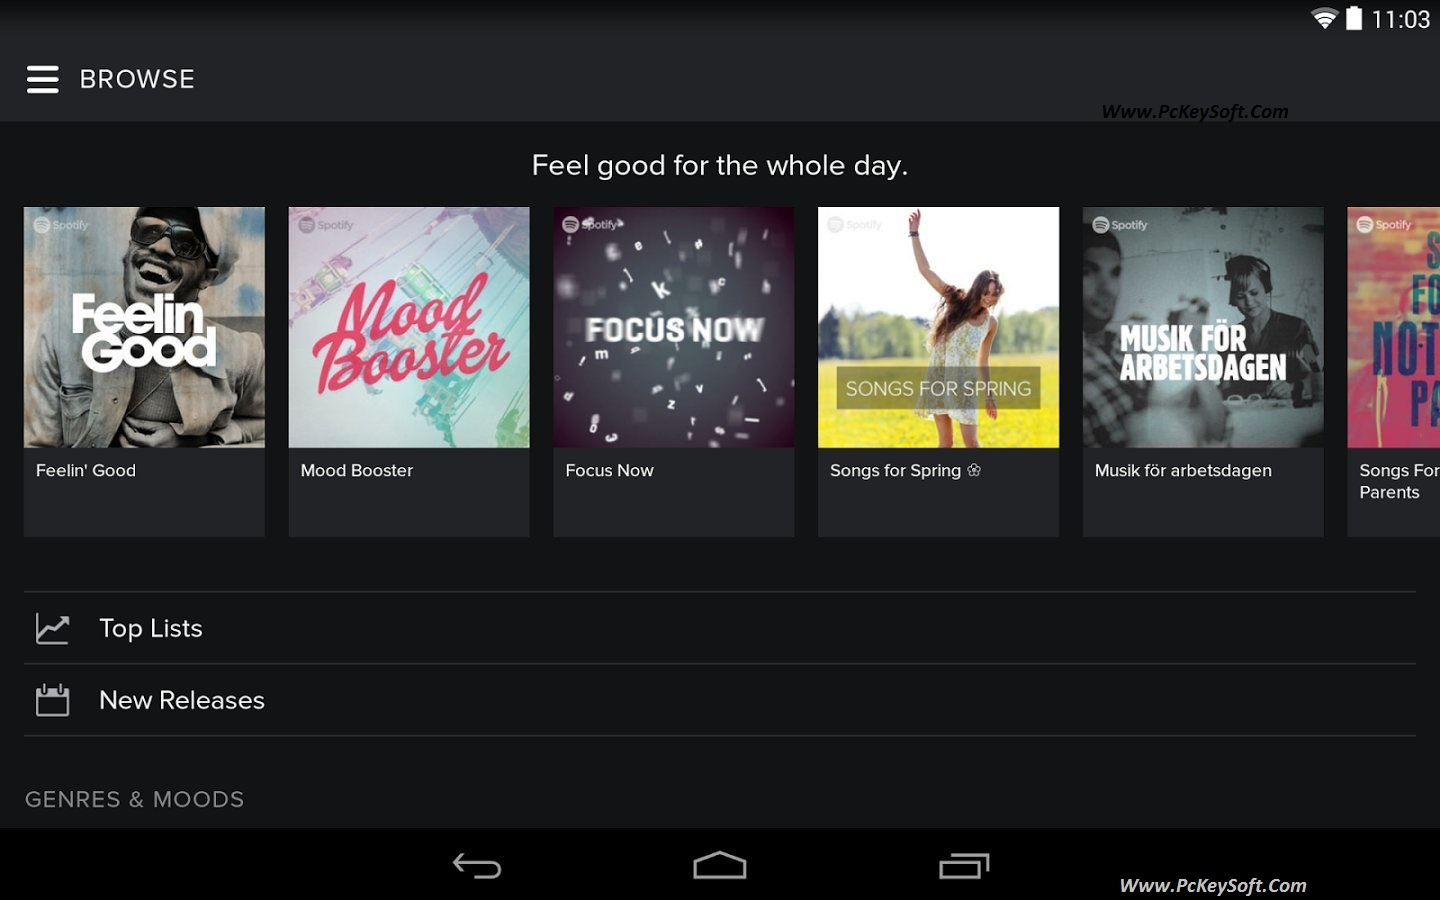 spotify-premium-apk-hack-v-8-0-download-full-version-Www-PcKeySoft-Com